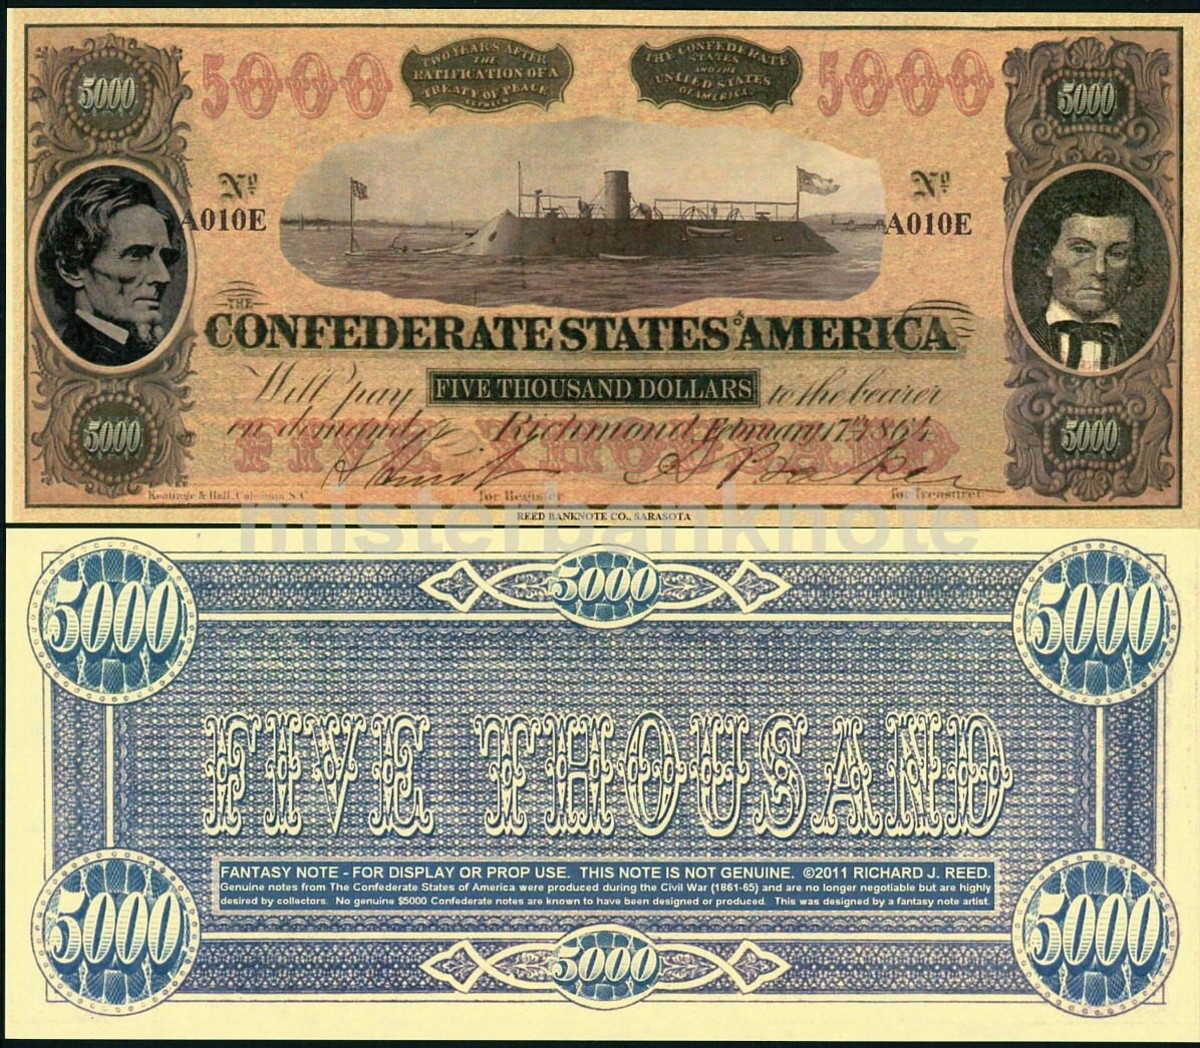 This is a  Confederate $5000 fantasy art note 1864 / 2011  CSS Virginia, Jefferson Davis, and Stephens on the front.